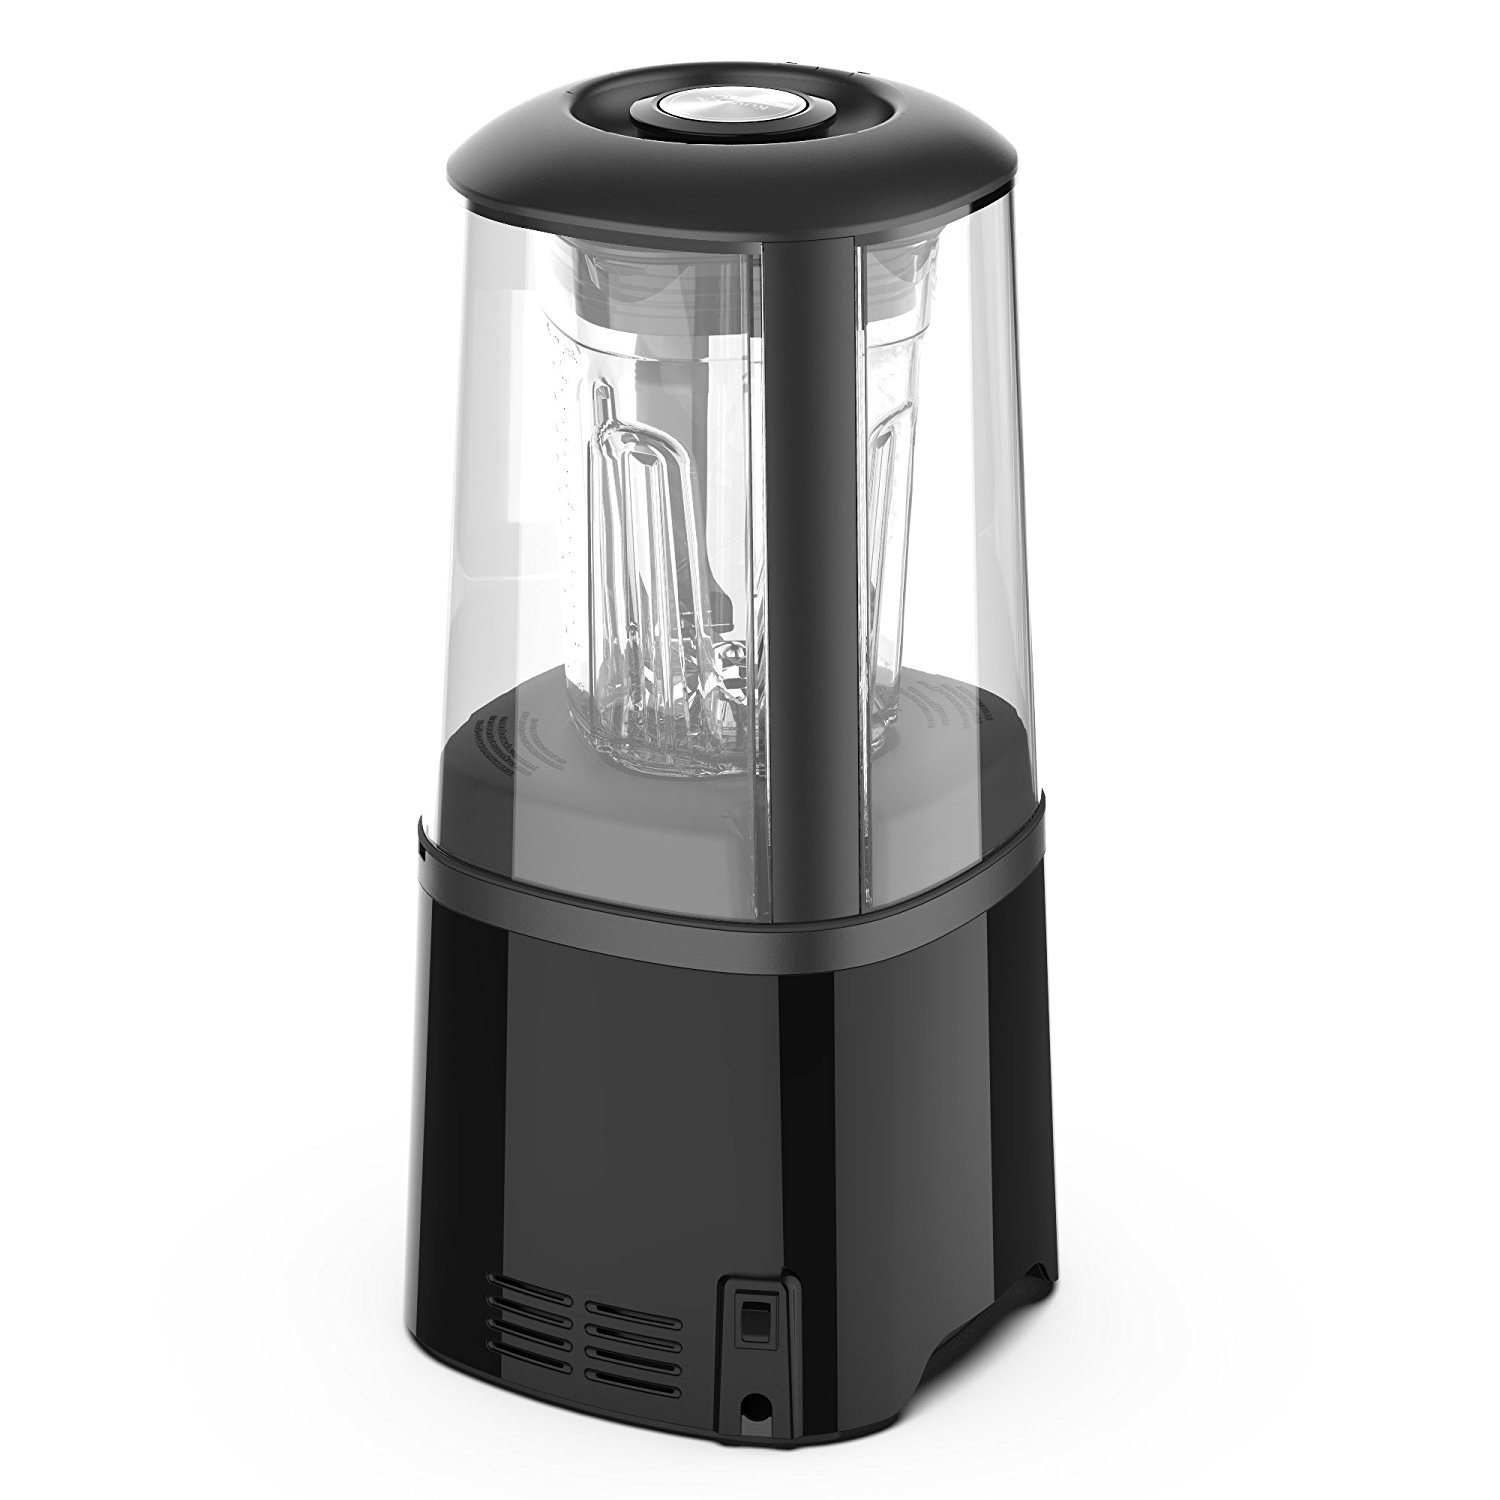 Kuvings Vacuum Sealed Auto Blender SV500B with BPA-Free Components, Quiet Blender, Virtually No Foam, Heavy Duty 3.5 HP Motor, 7 Year Warranty, Black